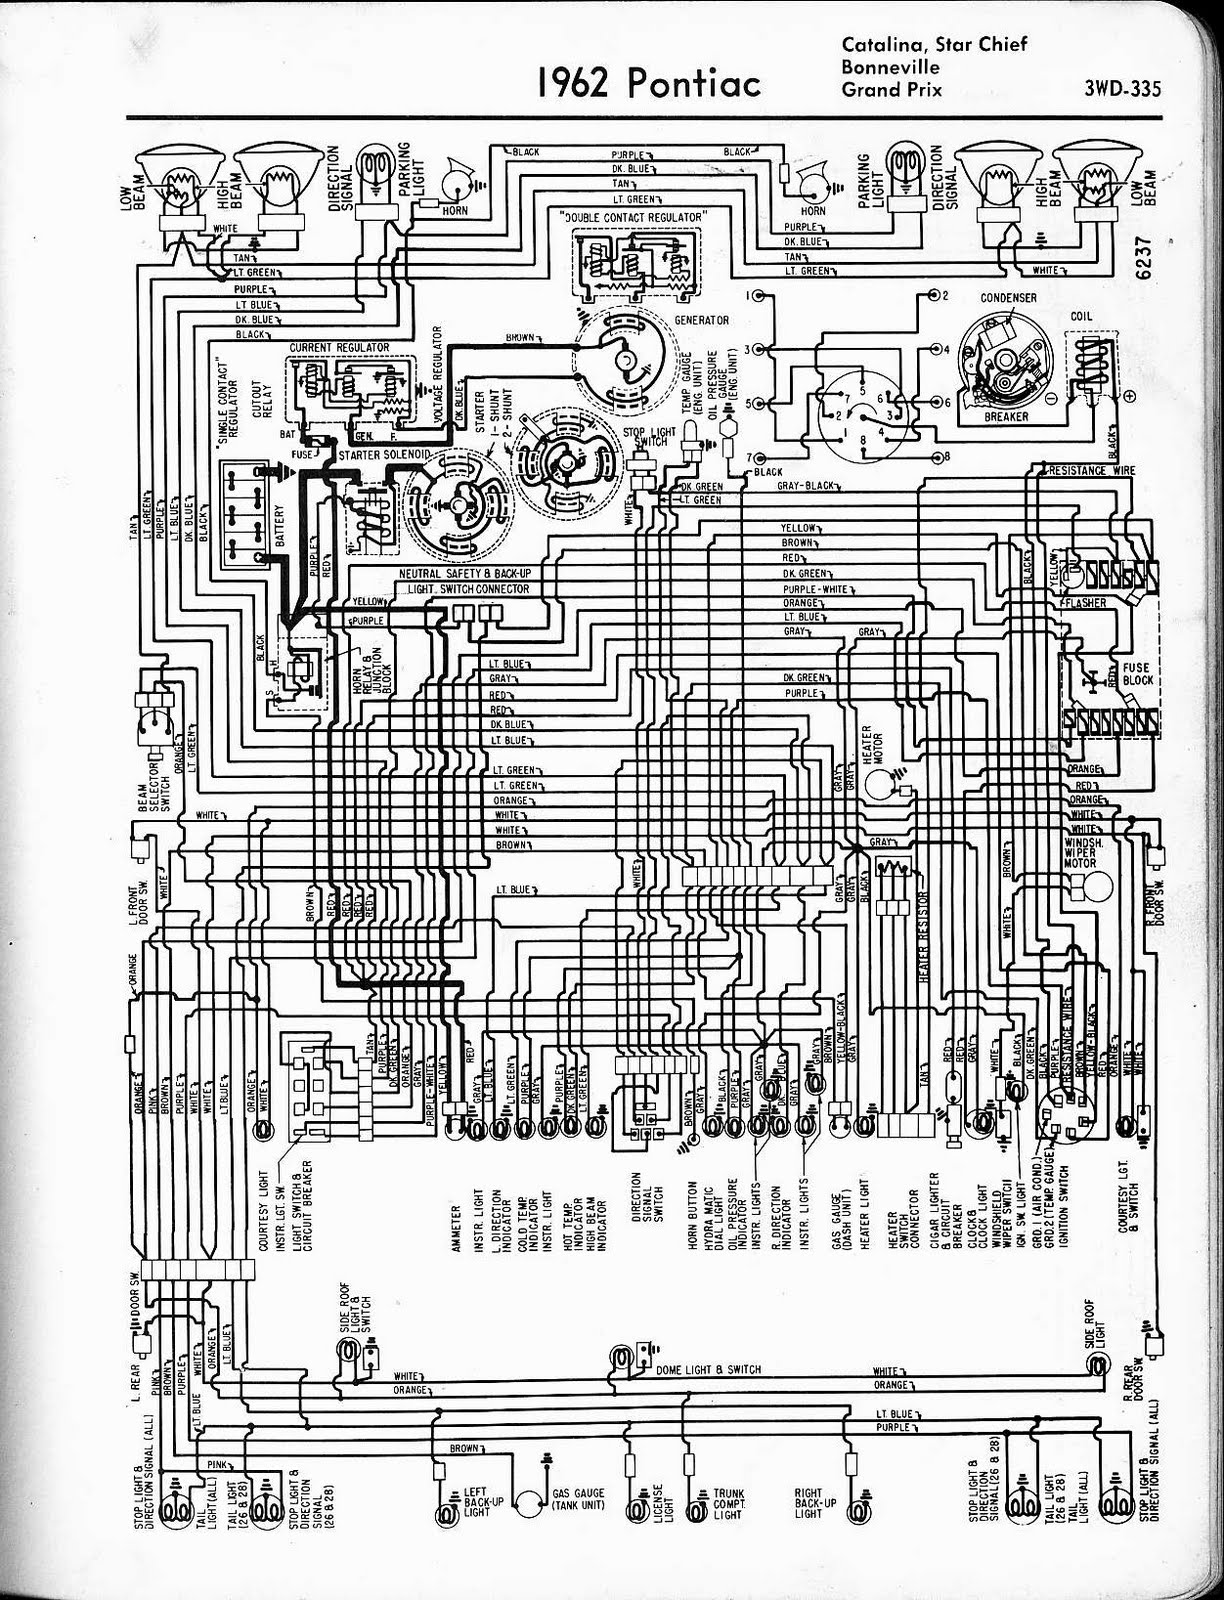 1995 pontiac wiring diagram wiring diagram database 1995 pontiac firebird wiring diagram [ 1224 x 1600 Pixel ]